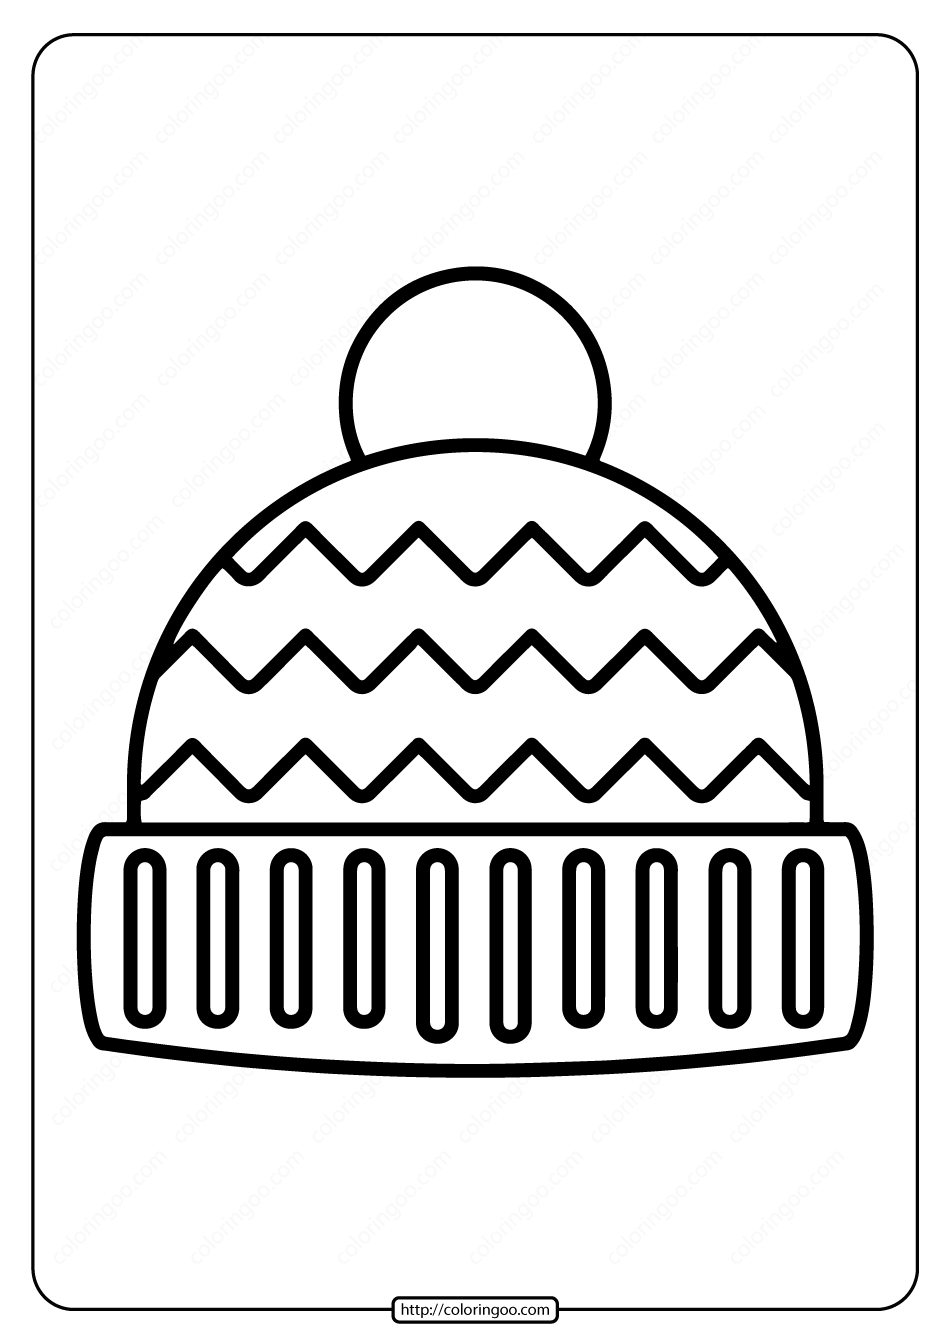 winter hat coloring page winter hat with snowflakes coloring page clothing hat coloring page winter